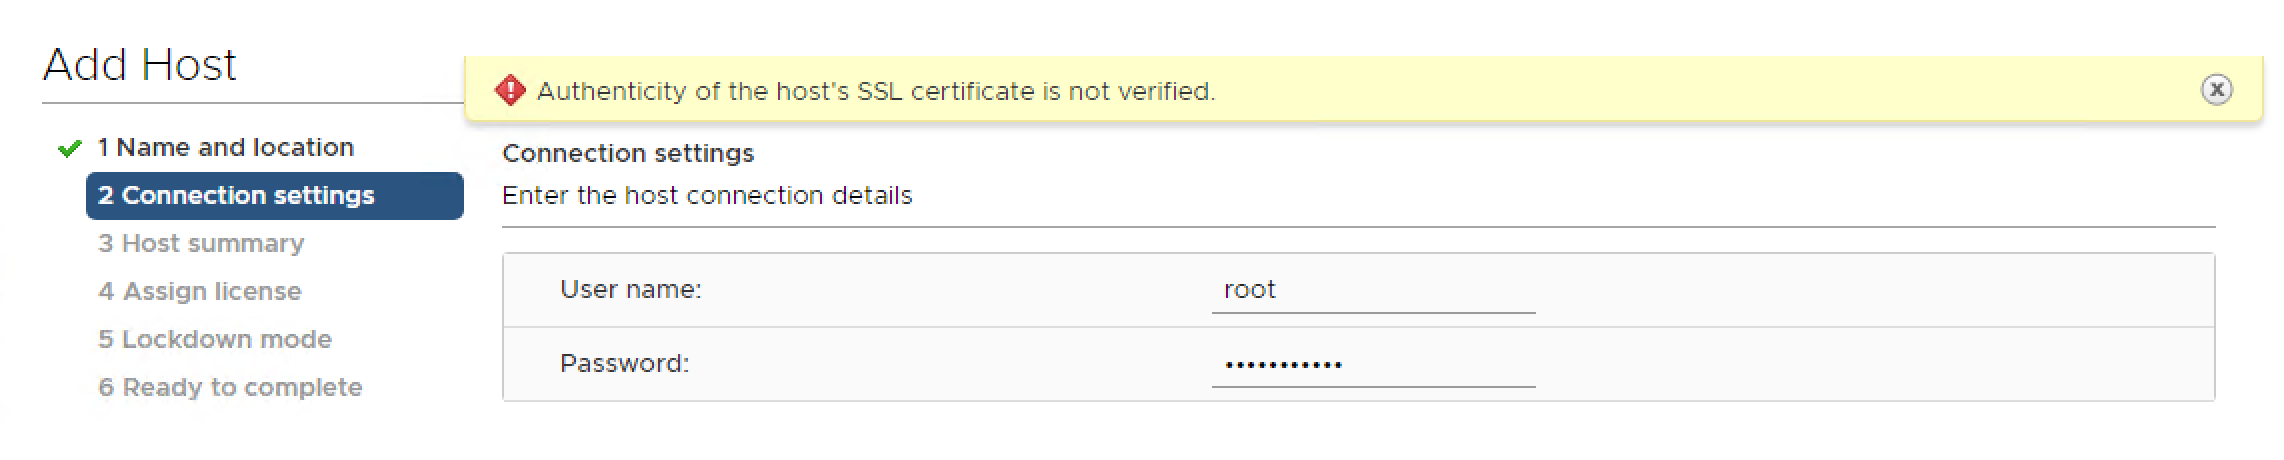 "Troubleshooting: Cannot Add host ""Authenticity of the host's SSL certificate is not verified""."